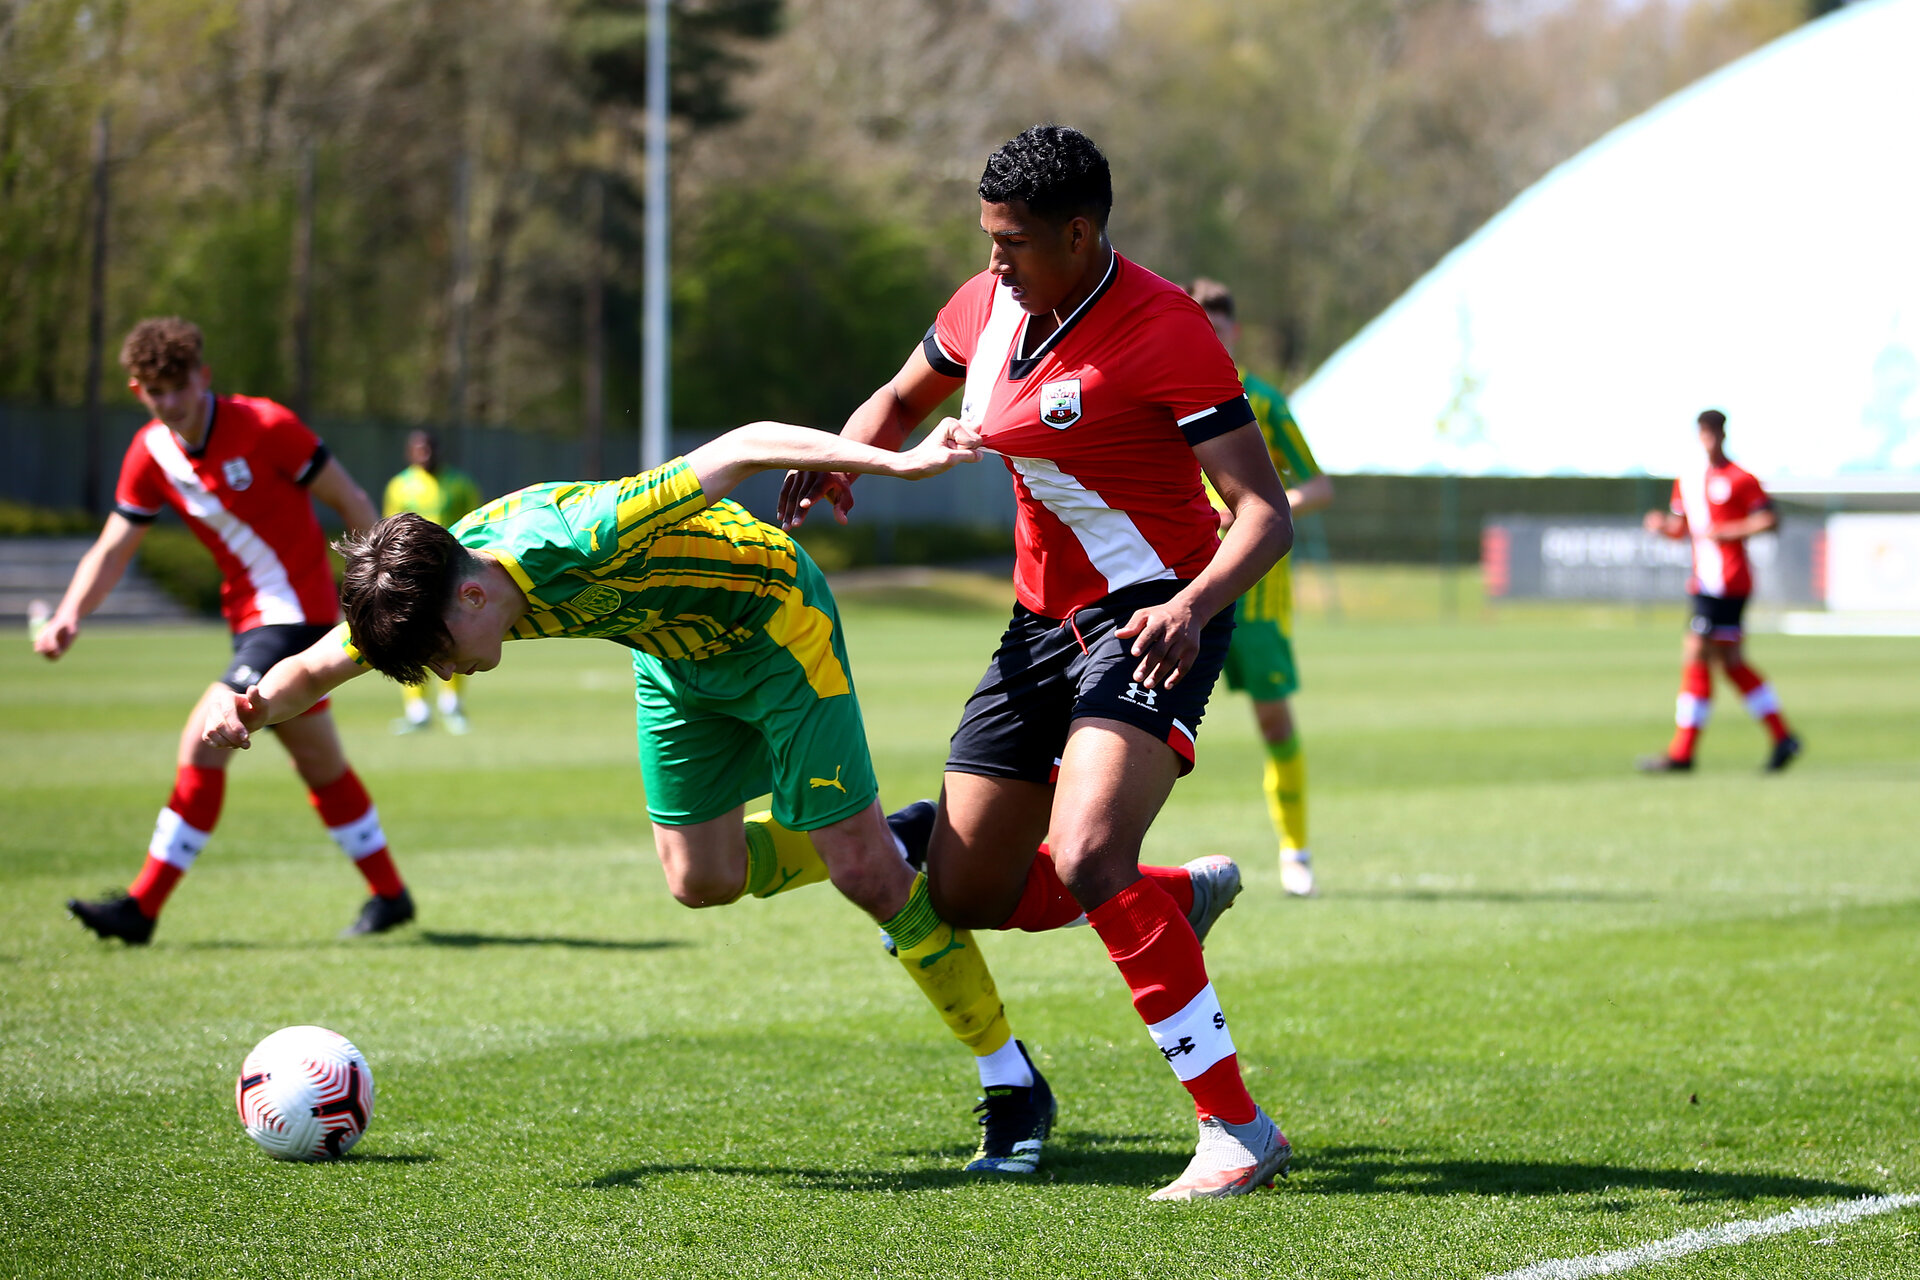 SOUTHAMPTON, ENGLAND - APRIL 24:  during the Premier League U18s match between Southampton U18 and West Bromwich Albion at Staplewood Campus on April 24, 2021 in Southampton, England. (Photo by Isabelle Field/Southampton FC via Getty Images)